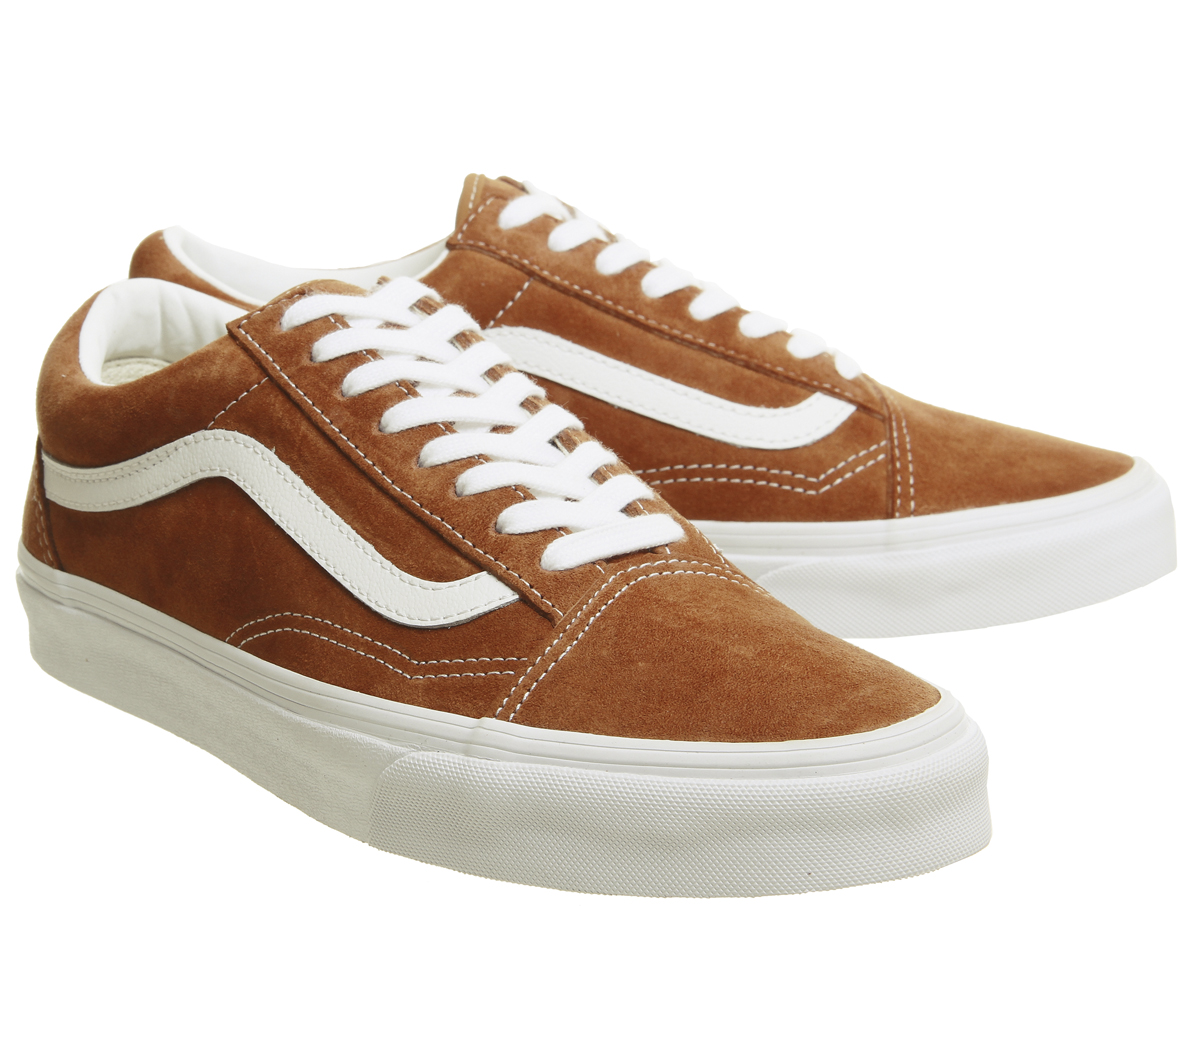 40de042e236774 Mens Vans Old Skool Trainers Leather Brown True White Trainers Shoes ...